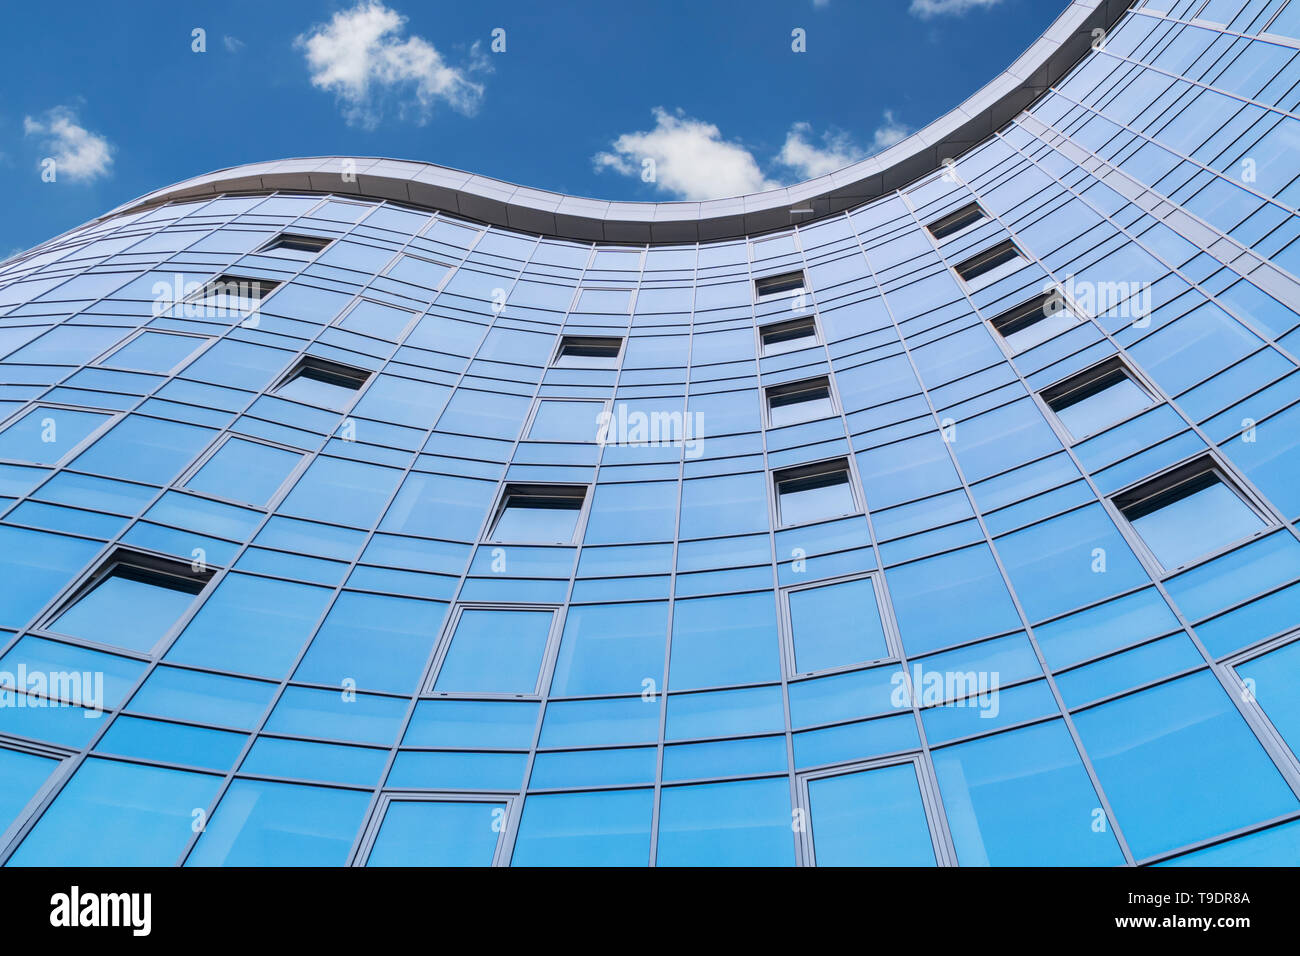 Blue glass tall building against the sky with clouds, view from below - Stock Image